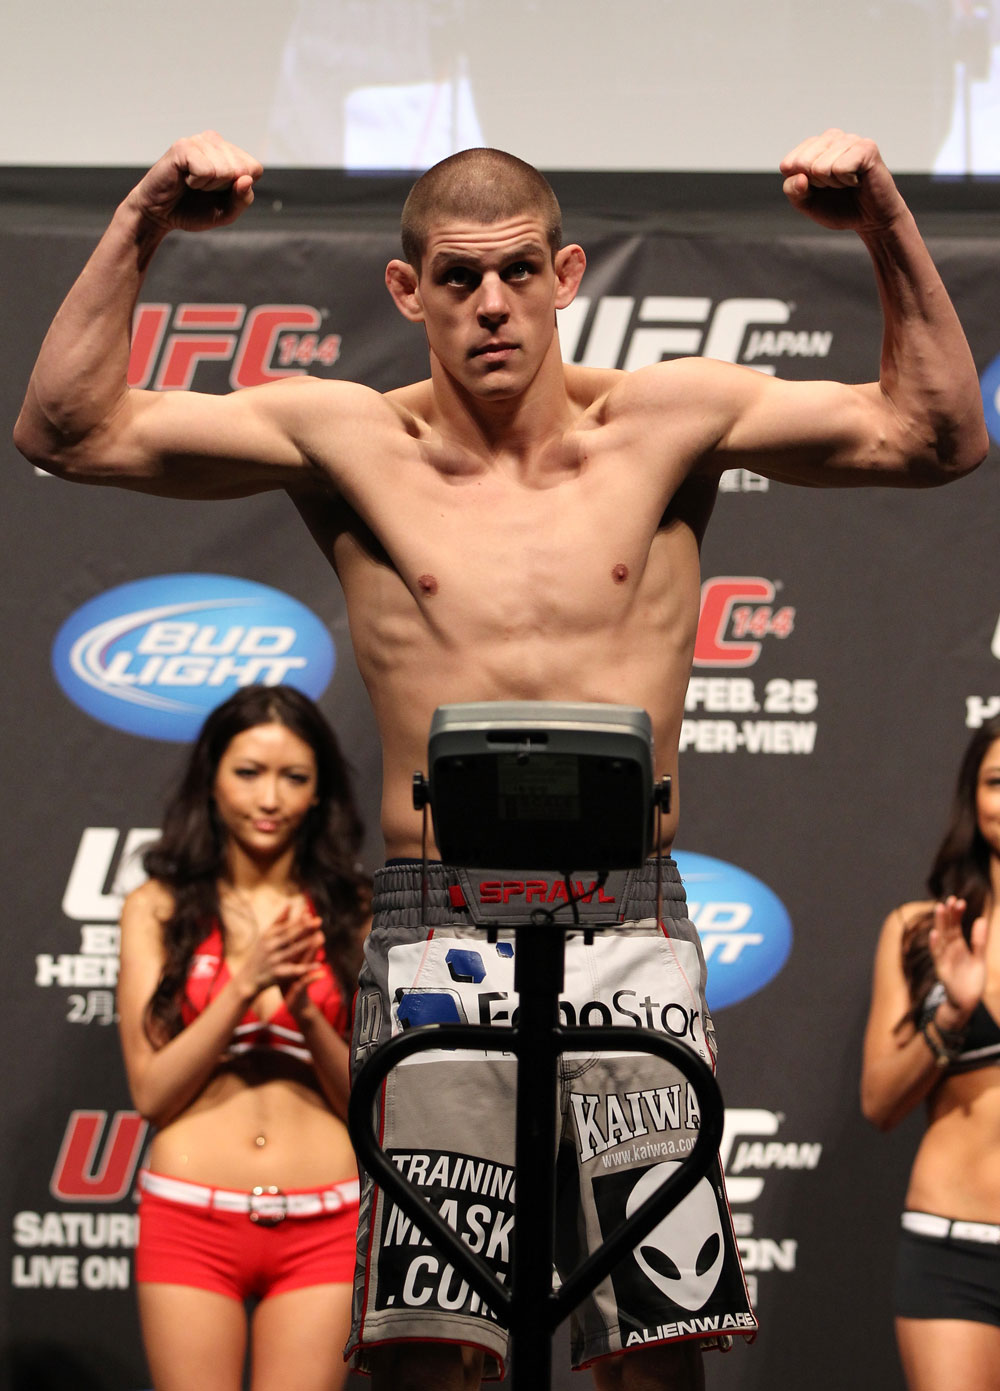 SAITAMA, JAPAN - FEBRUARY 25:  Joe Lauzon weighs in during the official UFC 144 weigh in at the Saitama Super Arena on February 25, 2012 in Saitama, Japan.  (Photo by Josh Hedges/Zuffa LLC/Zuffa LLC via Getty Images) *** Local Caption *** Joe Lauzon